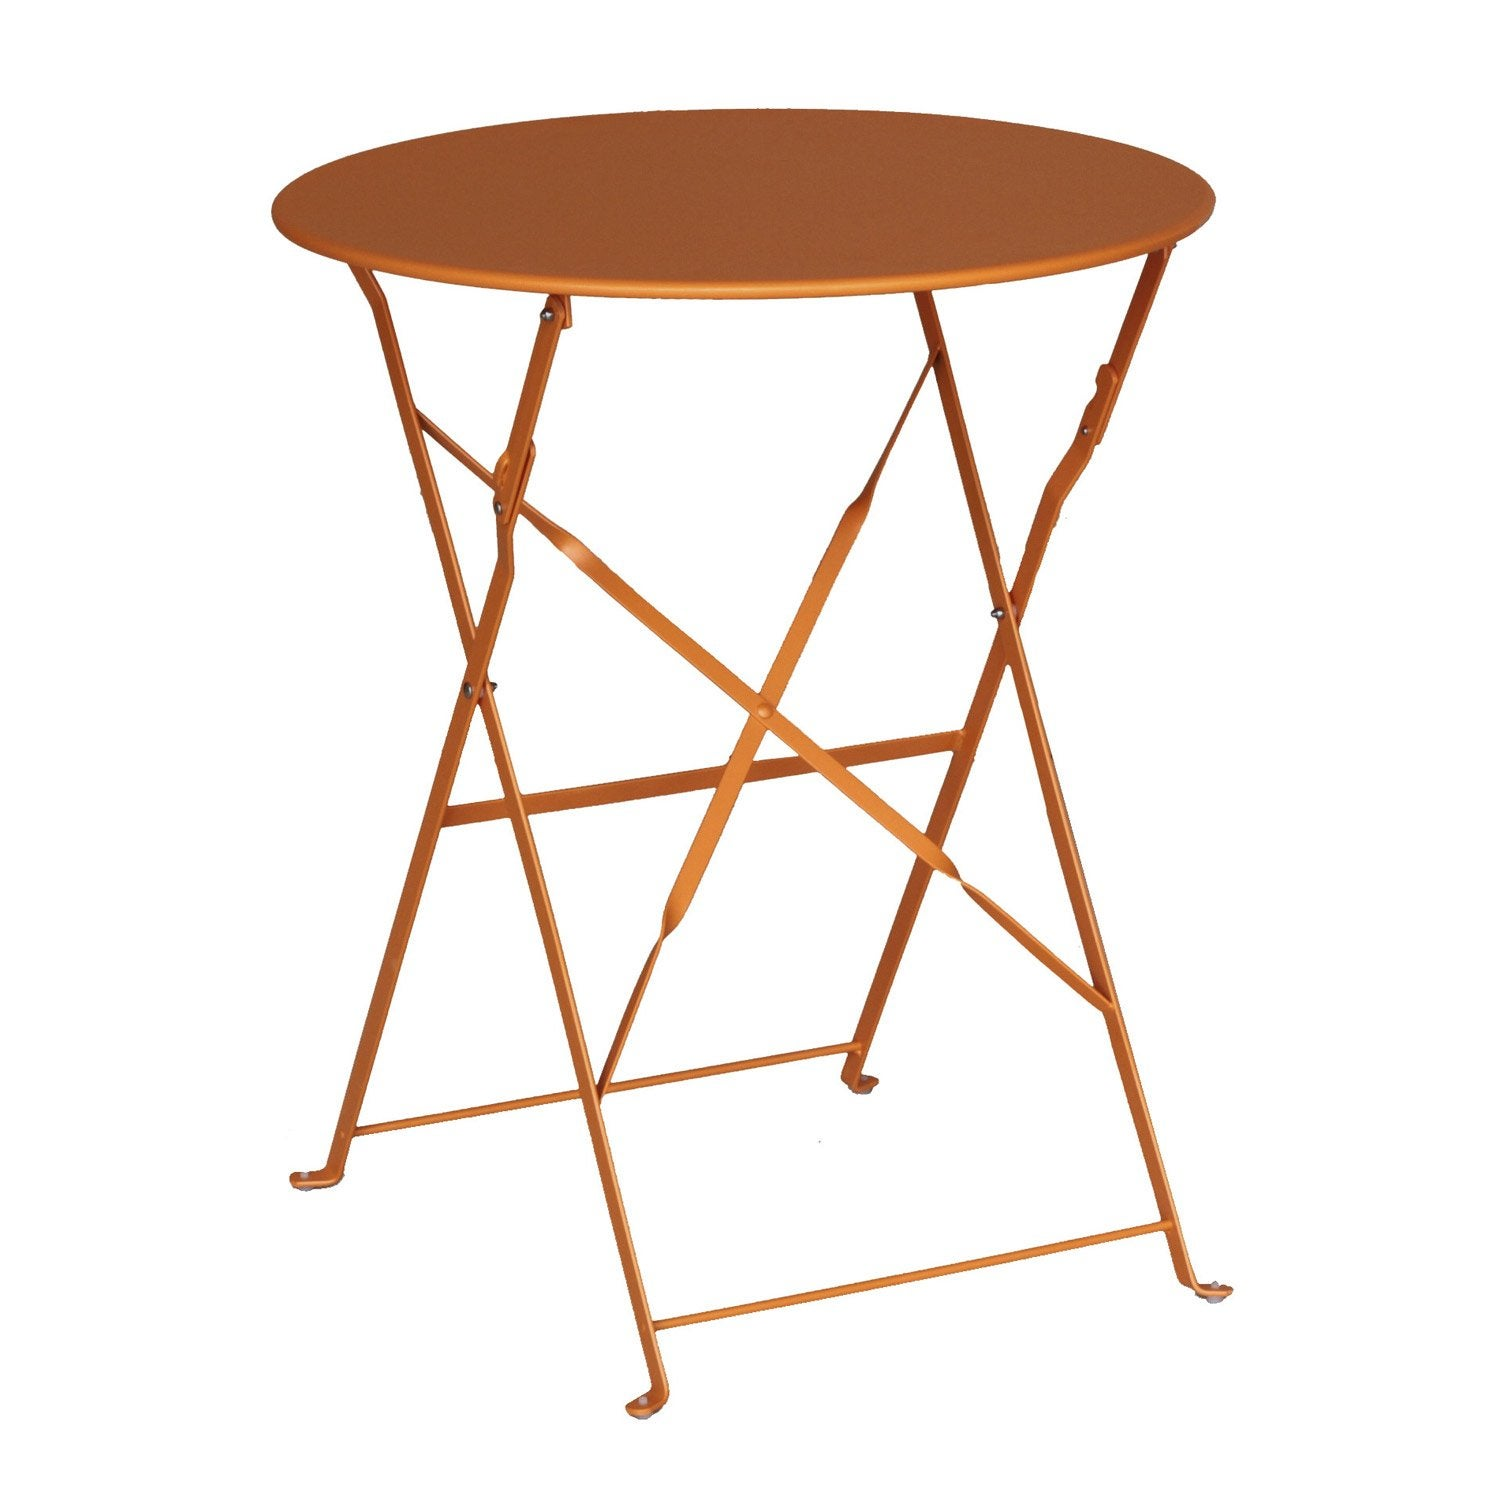 Table de jardin naterial flore ronde orange 2 personnes leroy merlin - Table jardin naterial villeurbanne ...